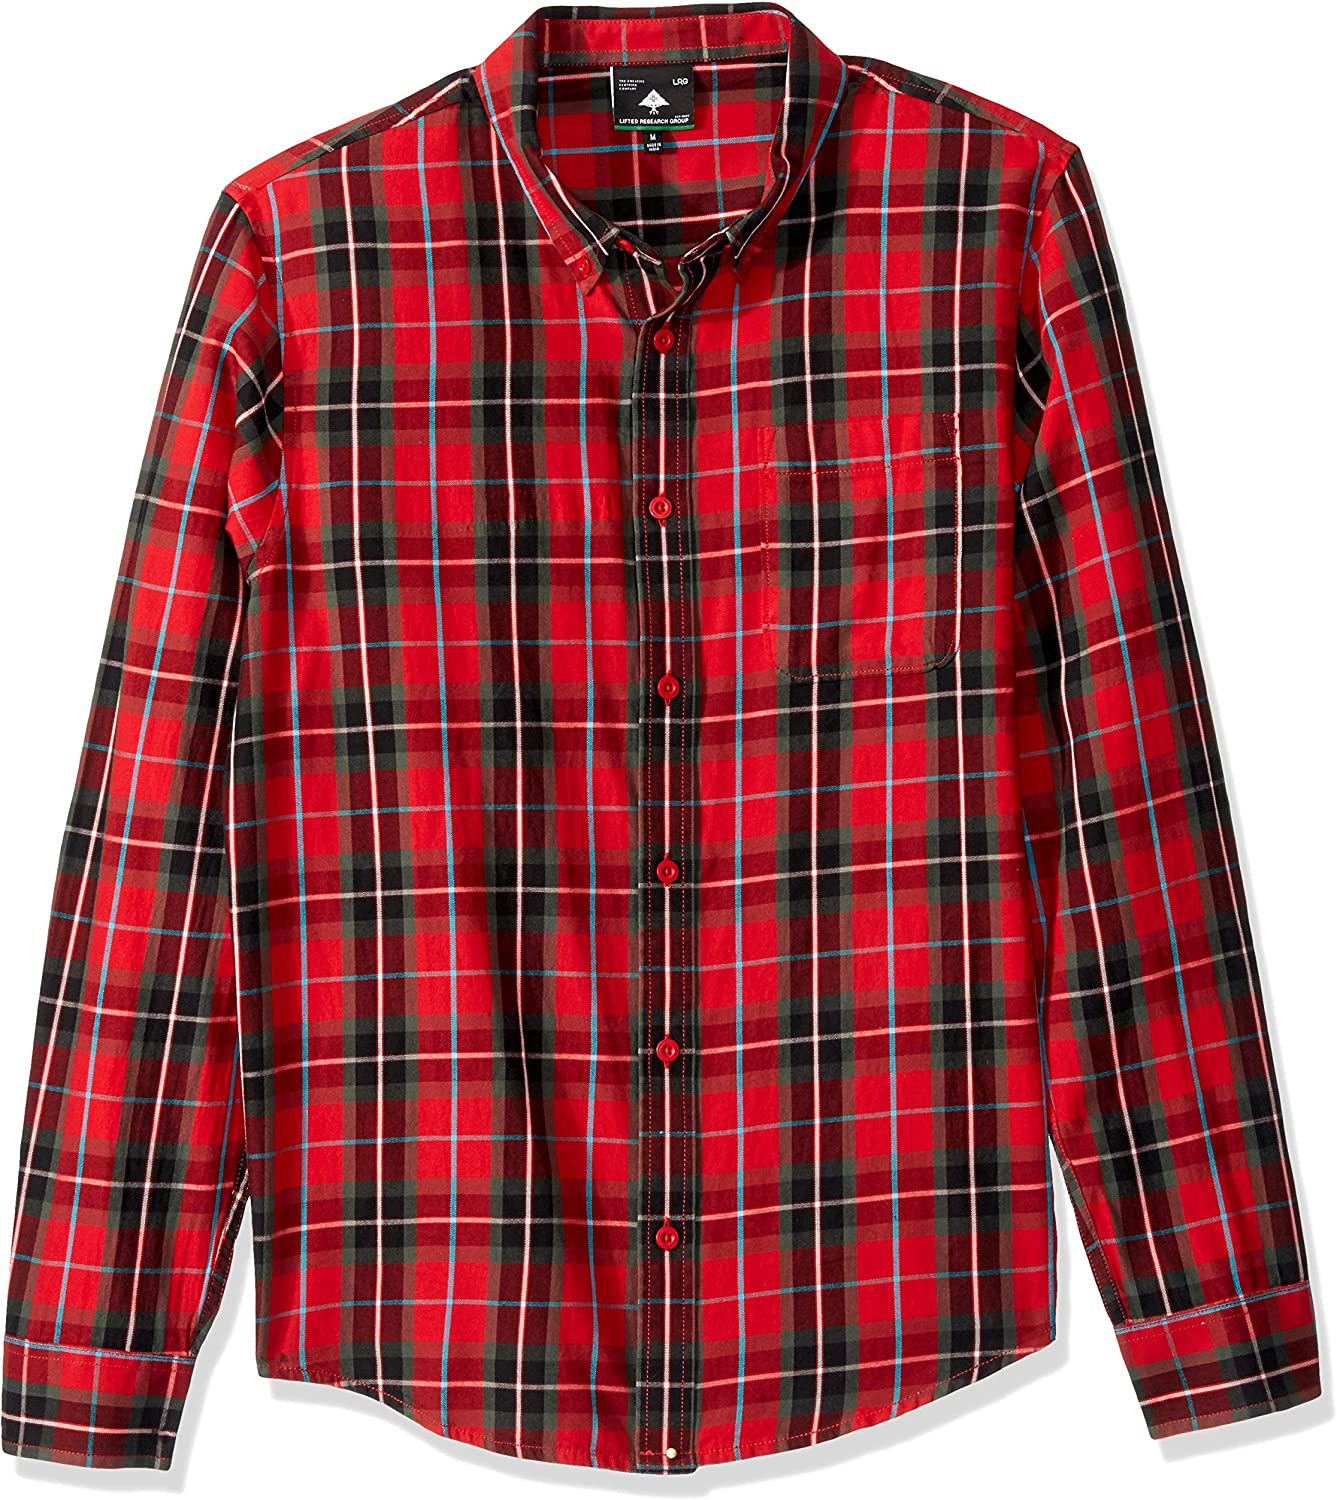 LRG Men's Lifted Research Group Long Sleeve Flannel Button Down Shirt: Clothing